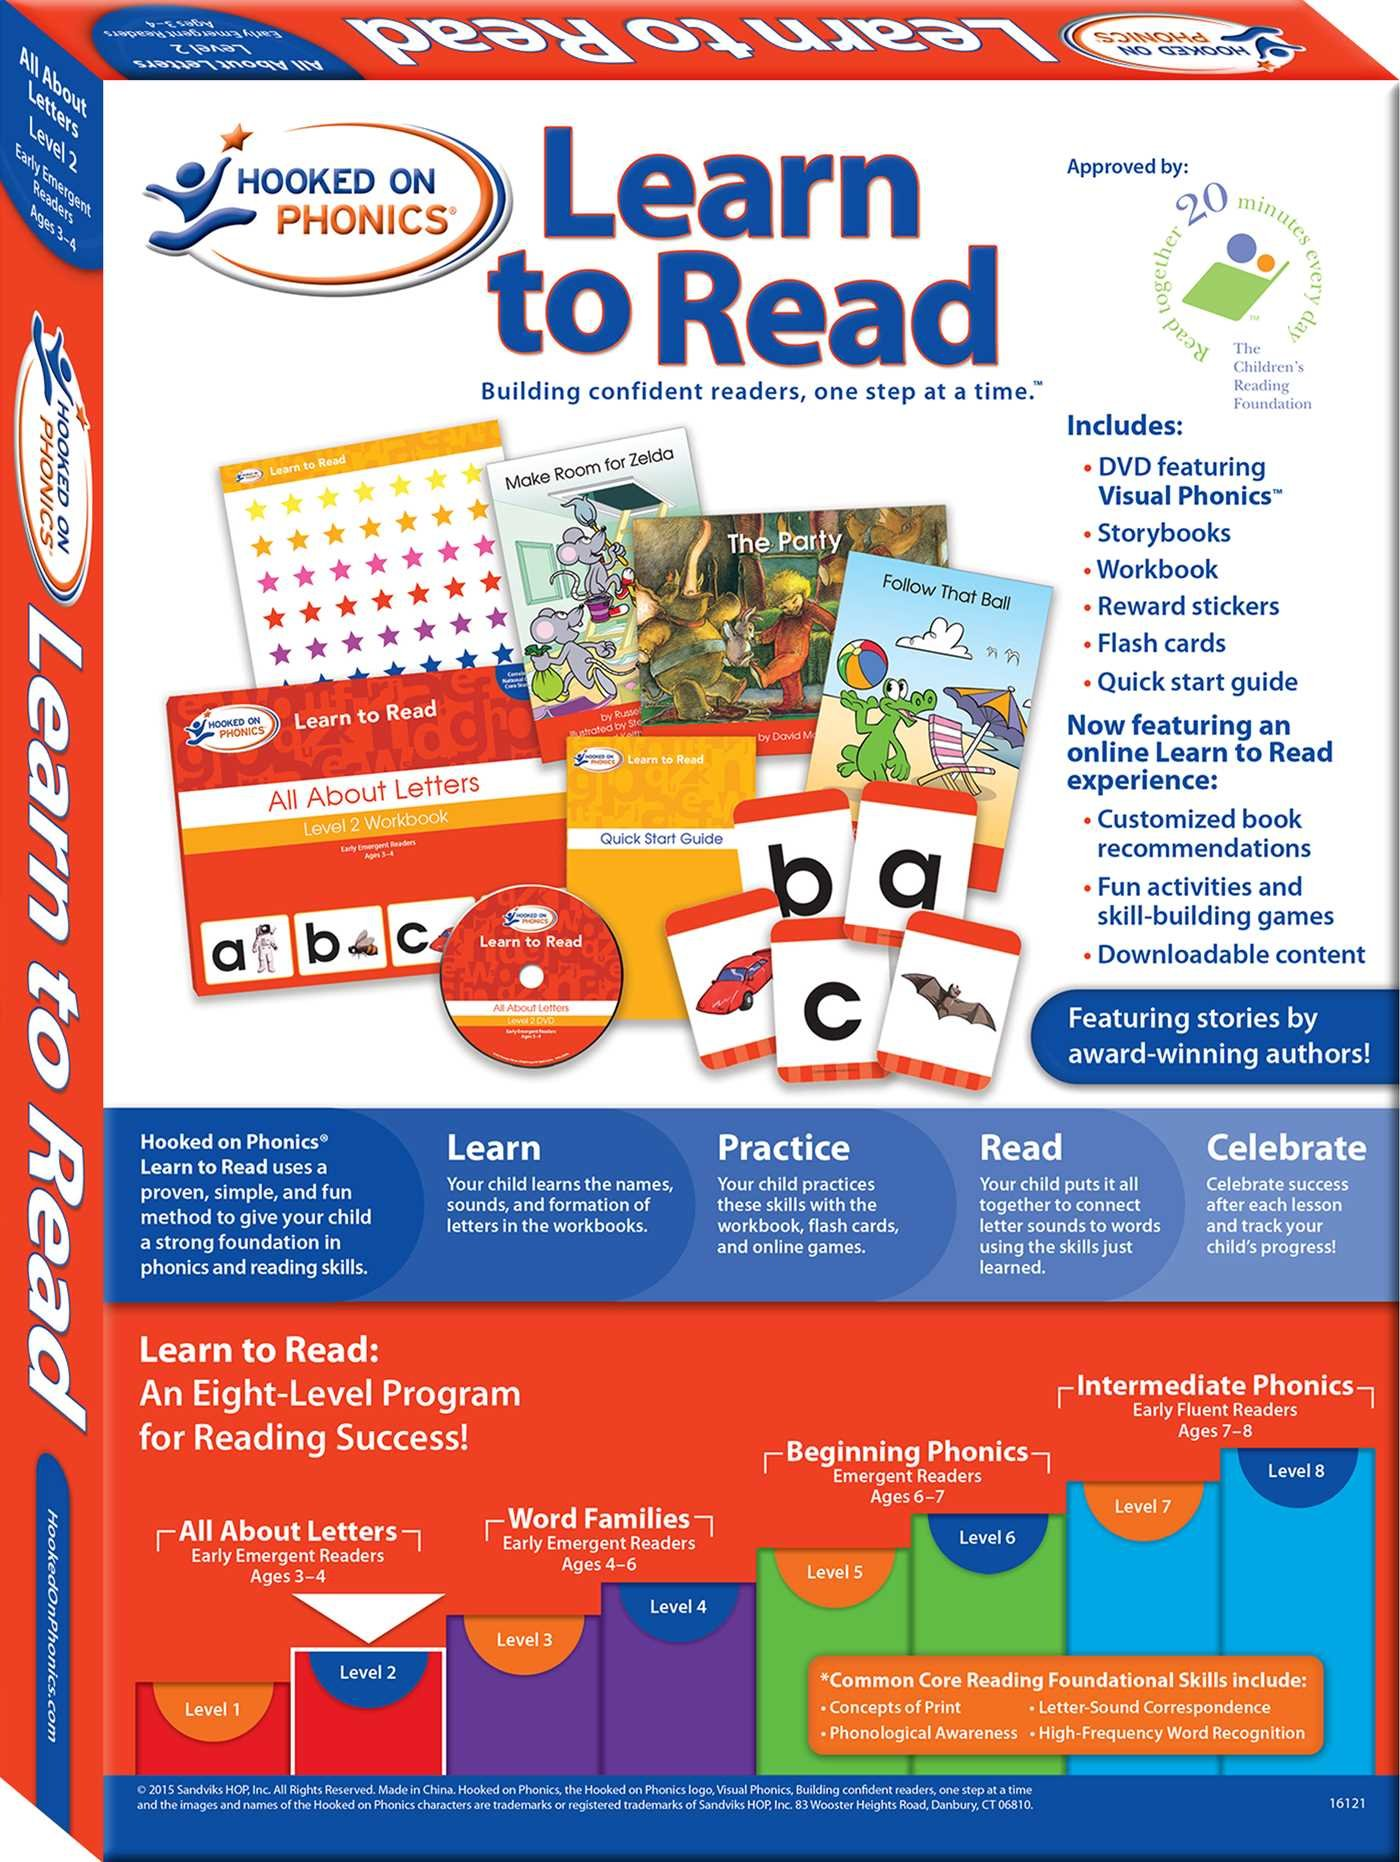 Hooked on phonics learn to read level 2 all about letters hooked on phonics learn to read level 2 all about letters early emergent readers pre k ages 3 4 hooked on phonics 0713974010639 amazon aljukfo Images